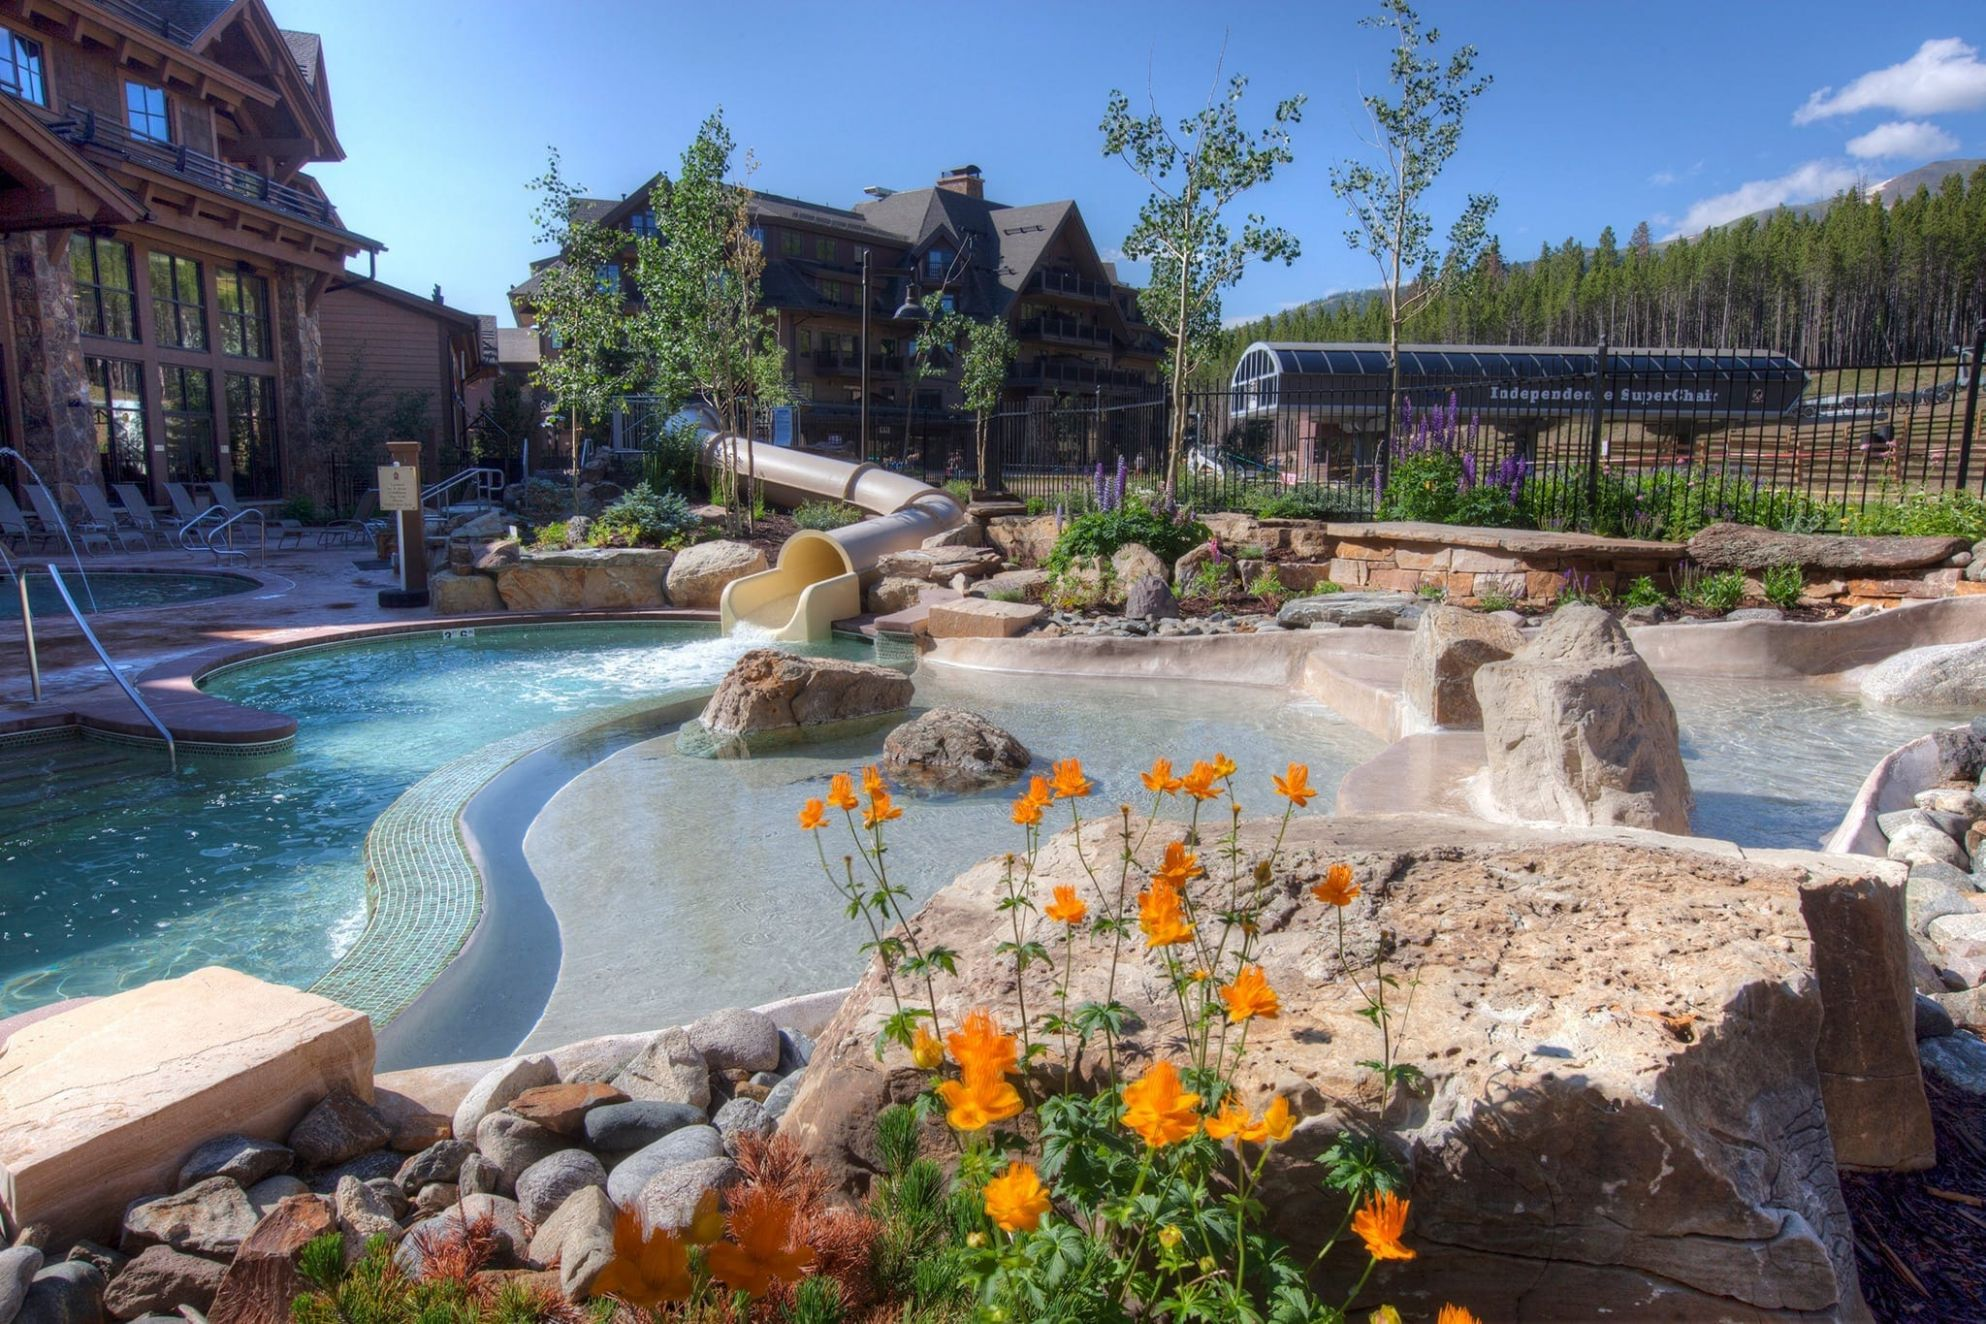 Best Pools in Breckenridge - Breckenridge, Colorado